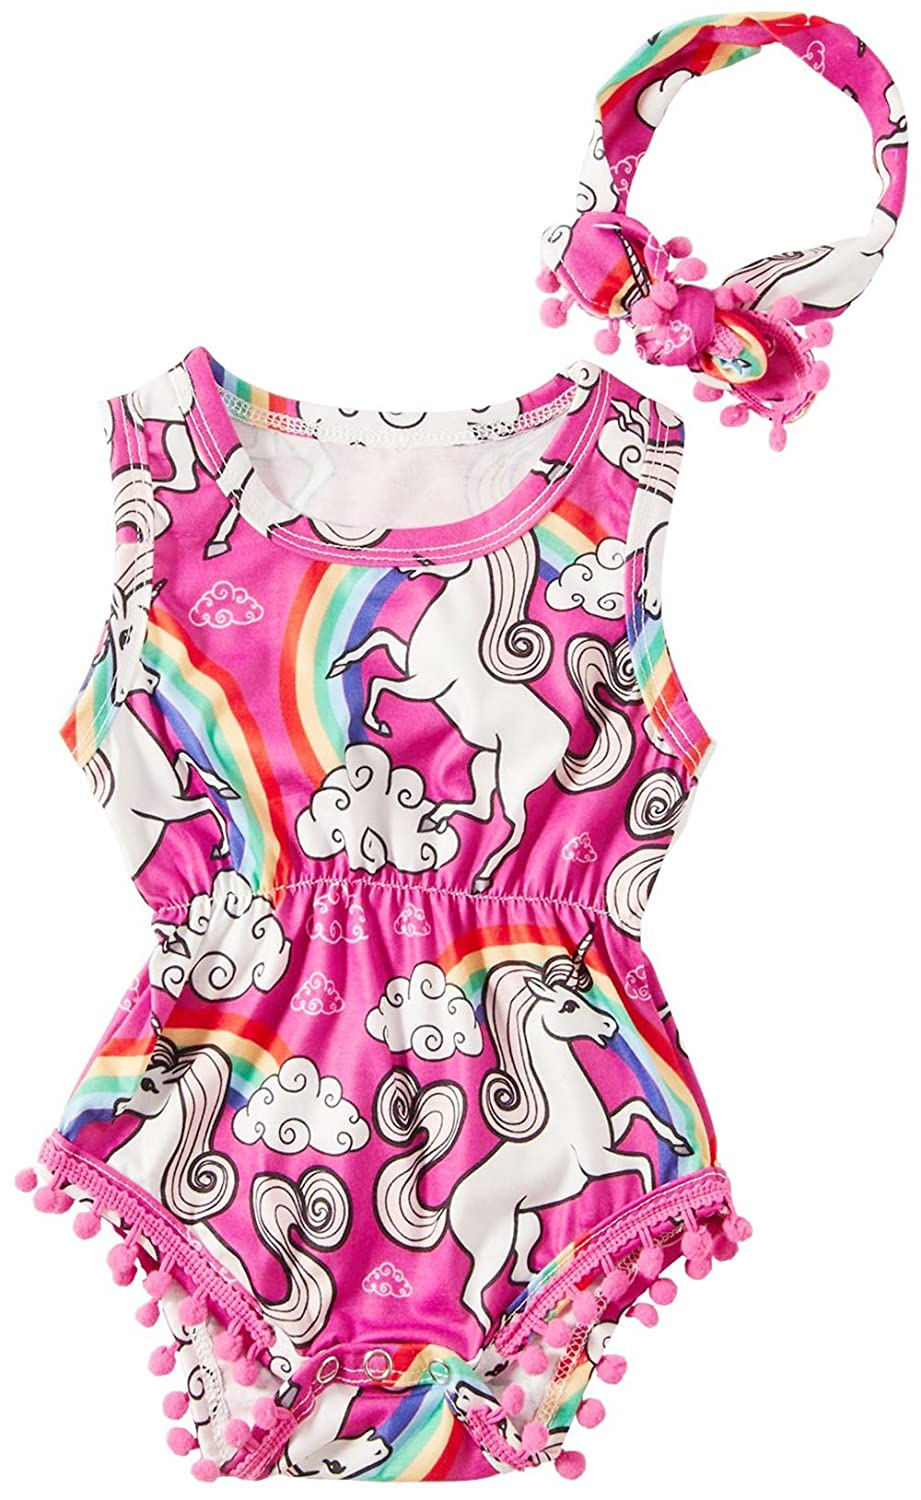 BFUSTYLE Girls Unicorn Set, Unicorn Dresses, Maxi Dress,Rompers,T-Shirt 0-13T WSY20180611A